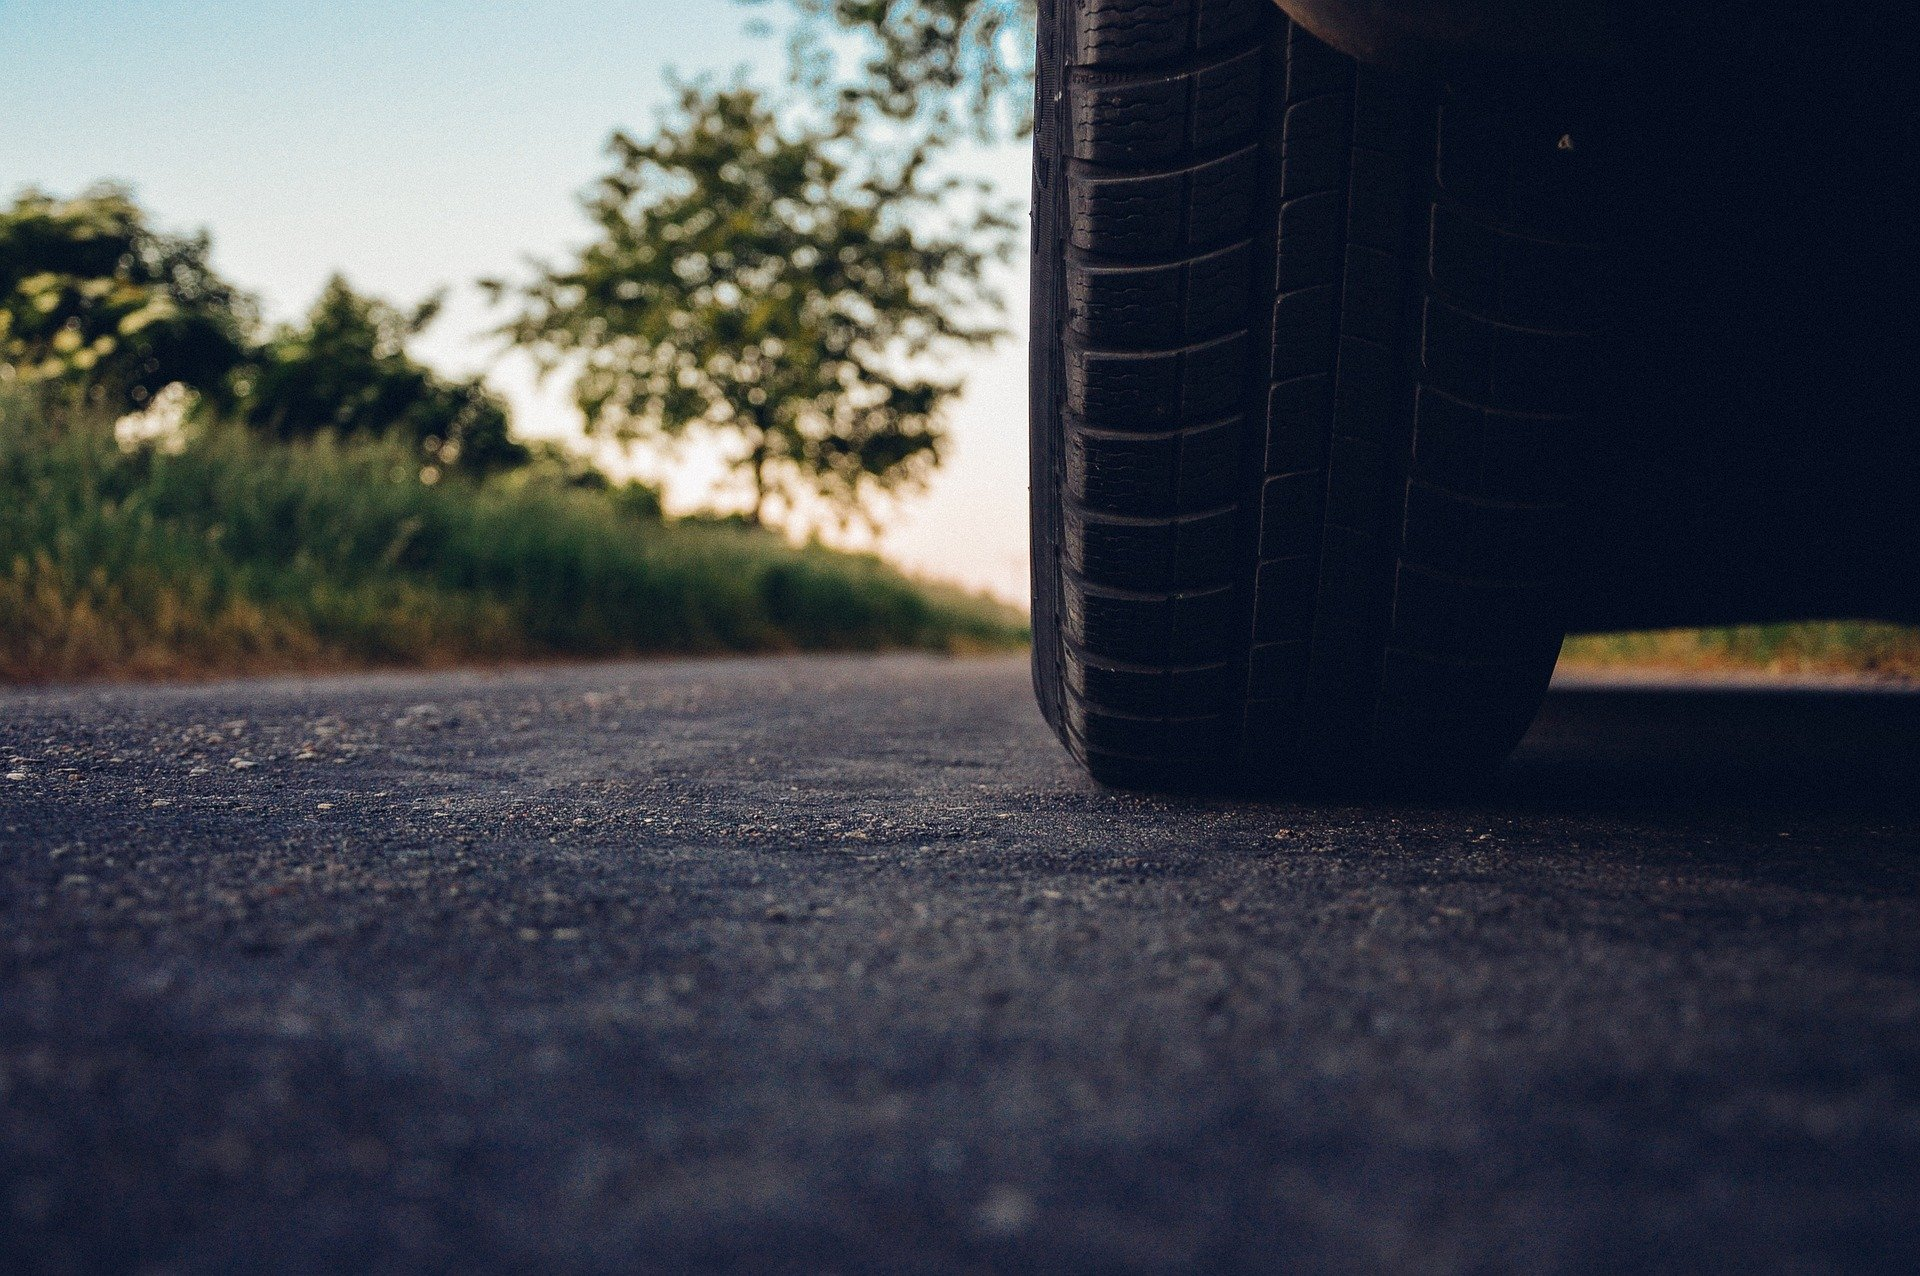 low-angle-view-of-car-tire-on-asphalt-road-with-grass-and-tree-in-background